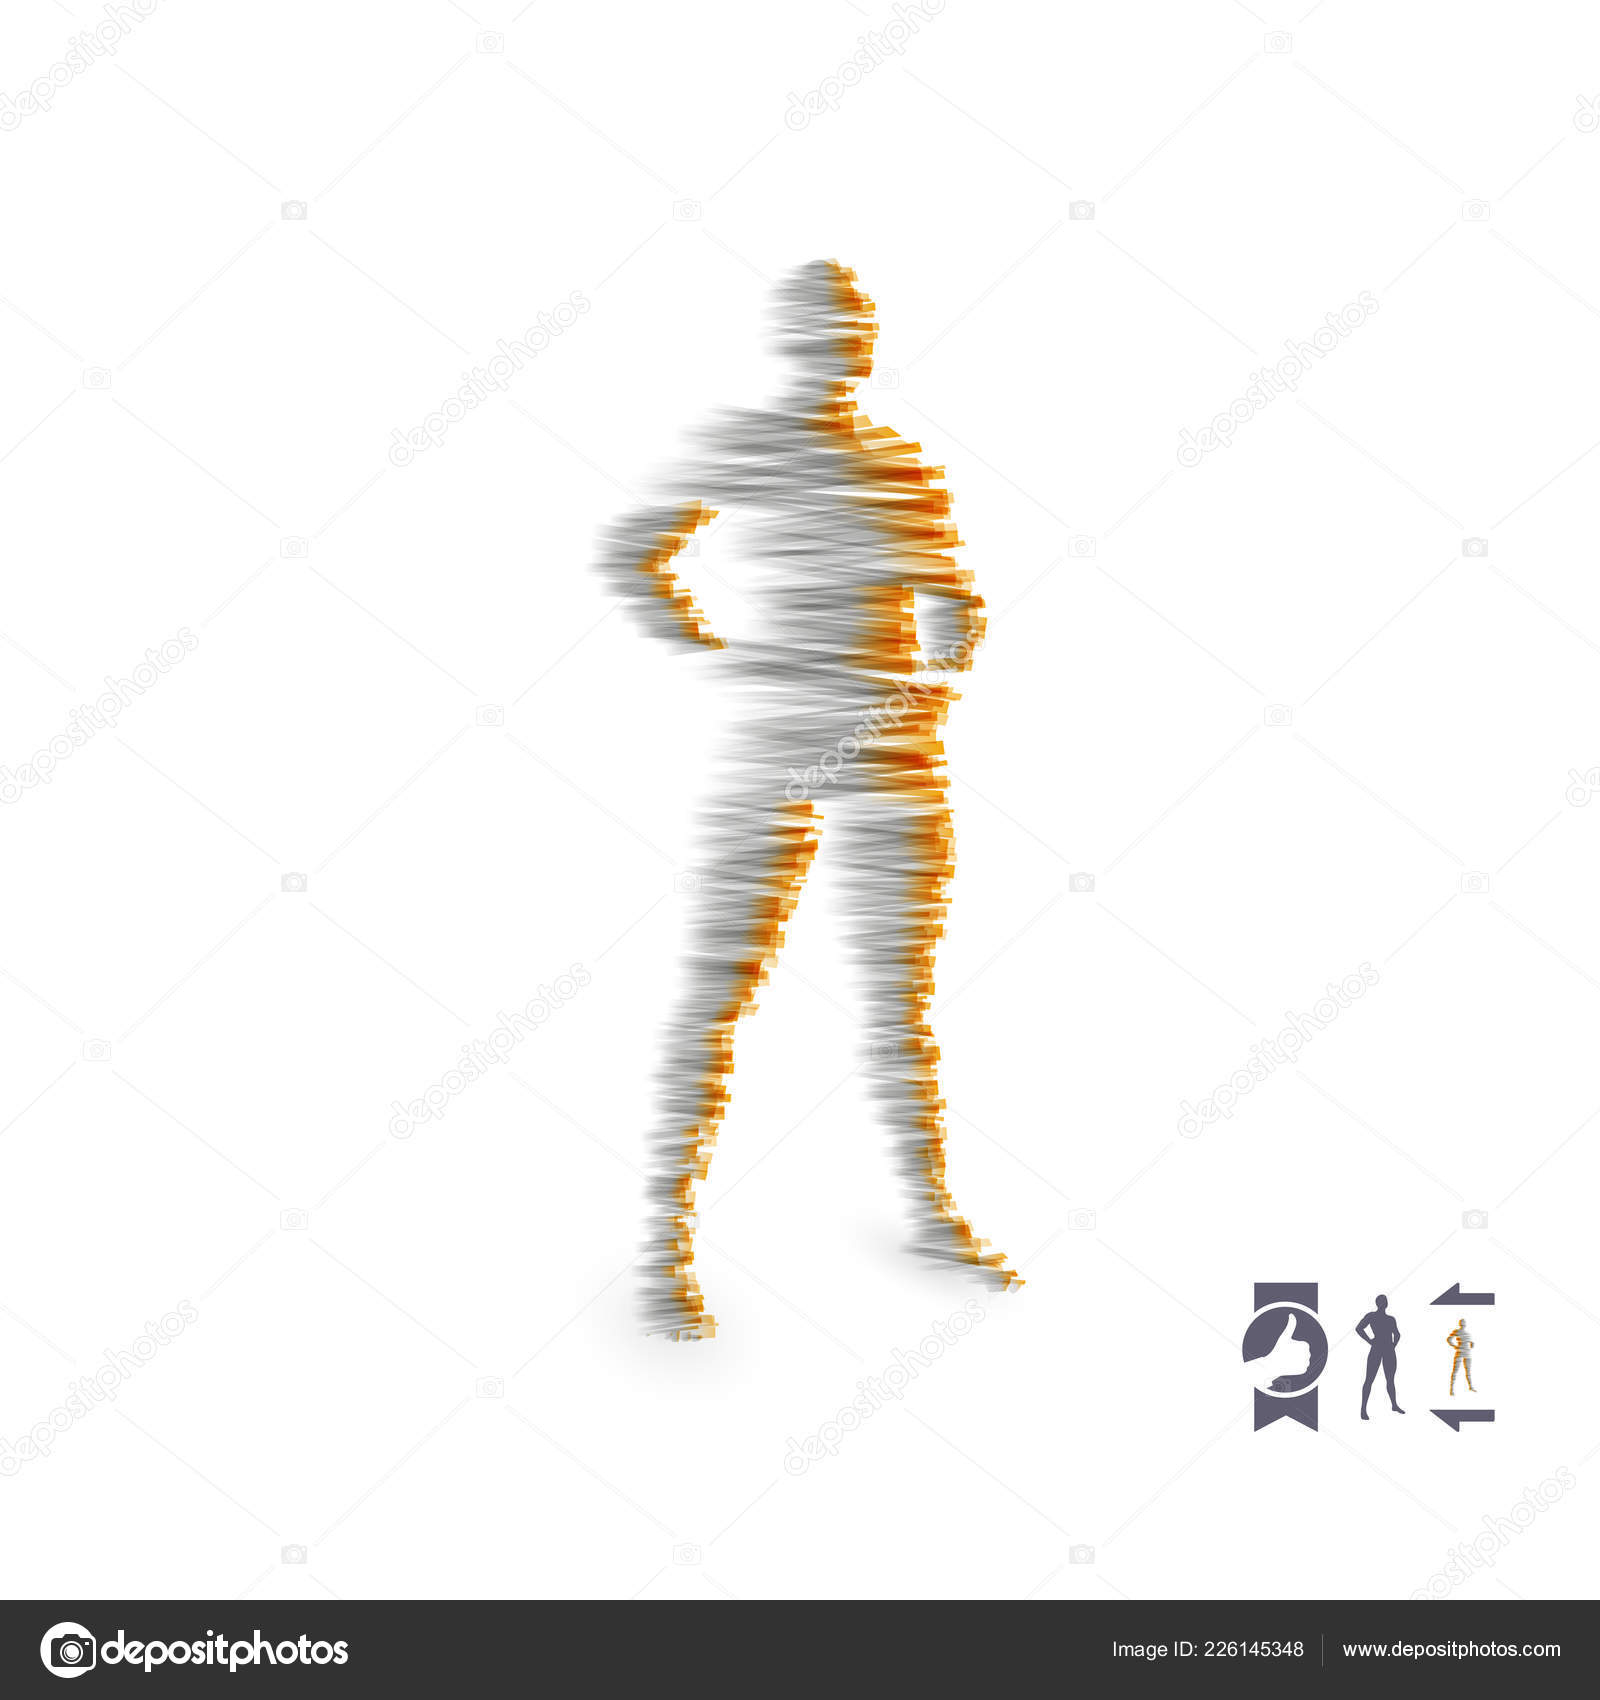 Standing Man Human Body Model Design Element Man Stands His Stock